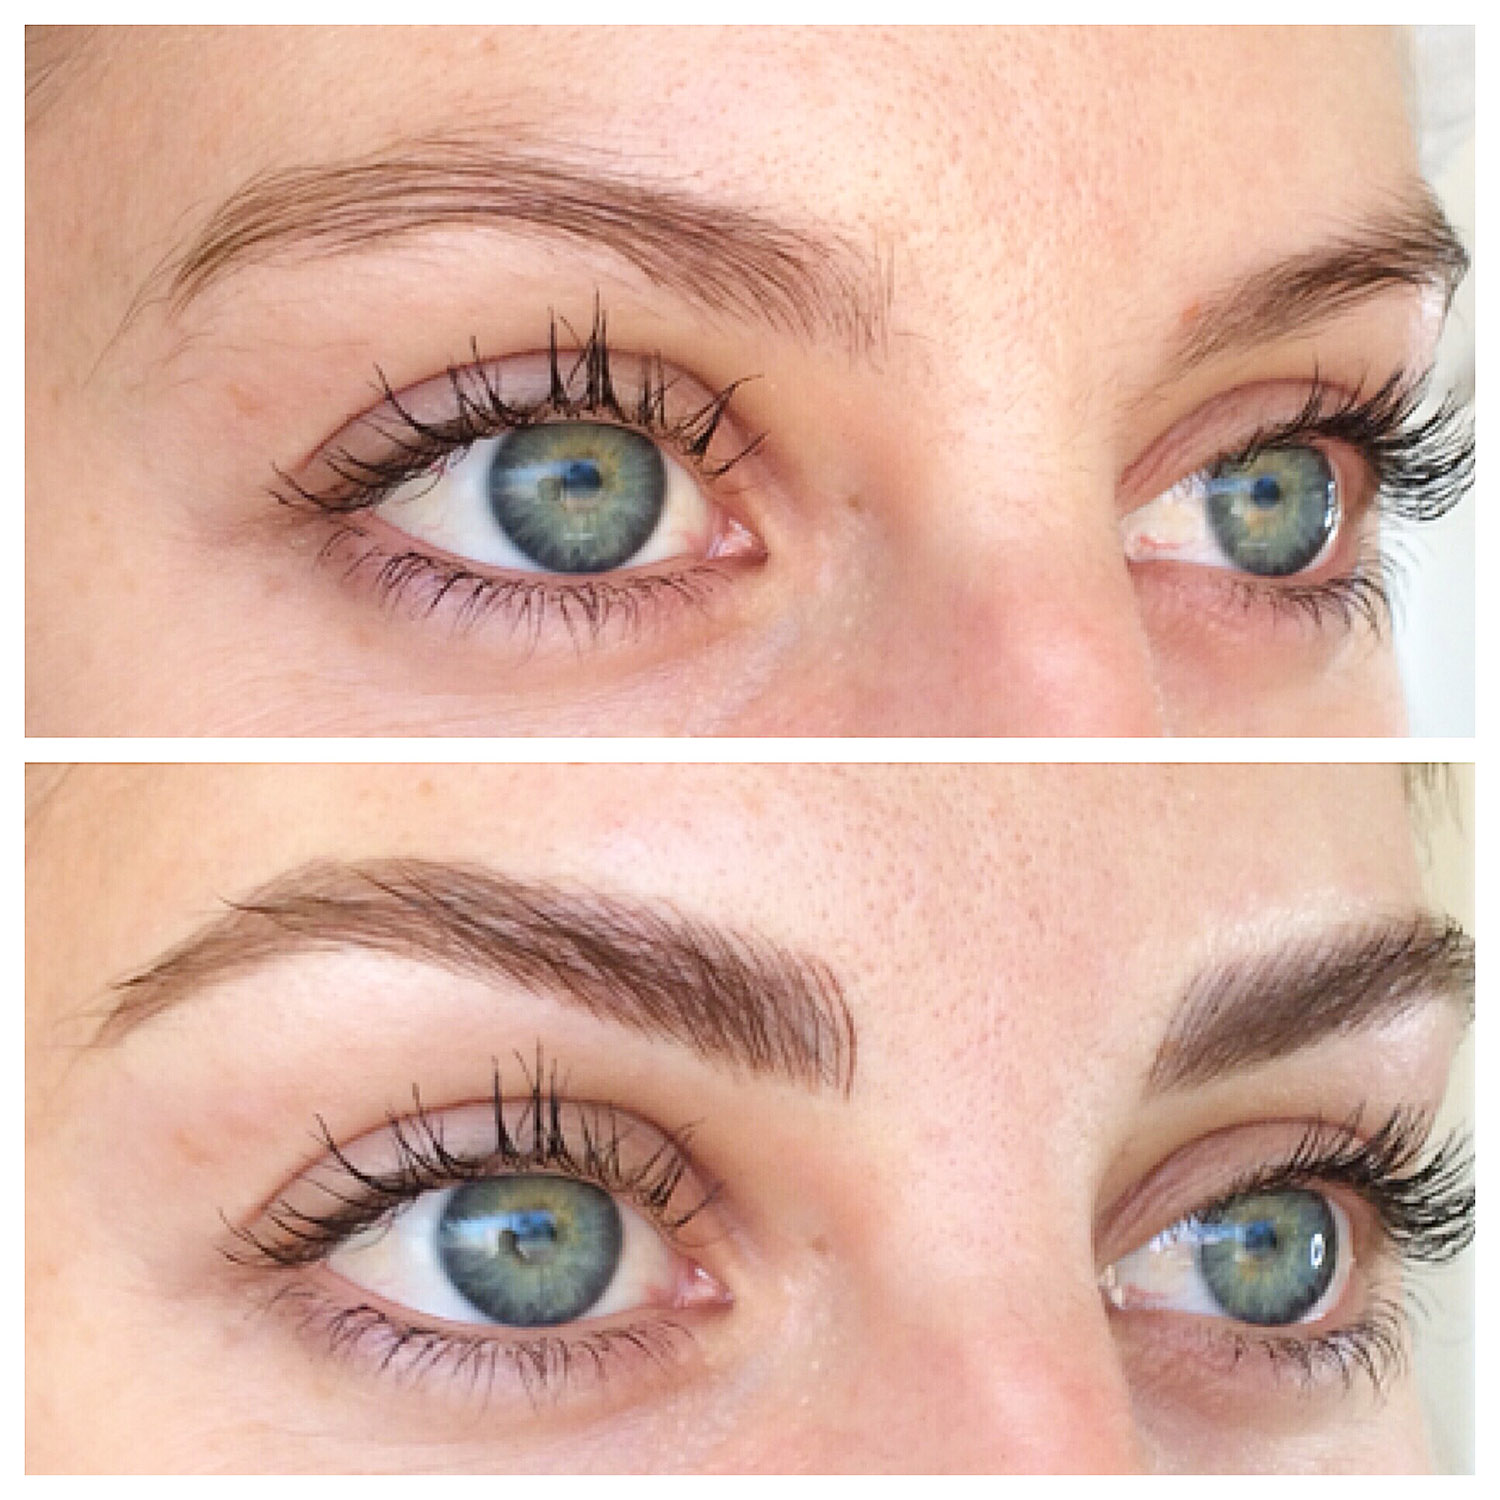 Eyebrow Tattoo Before And After: Perth Eyebrow Makeovers Brow Styling Images